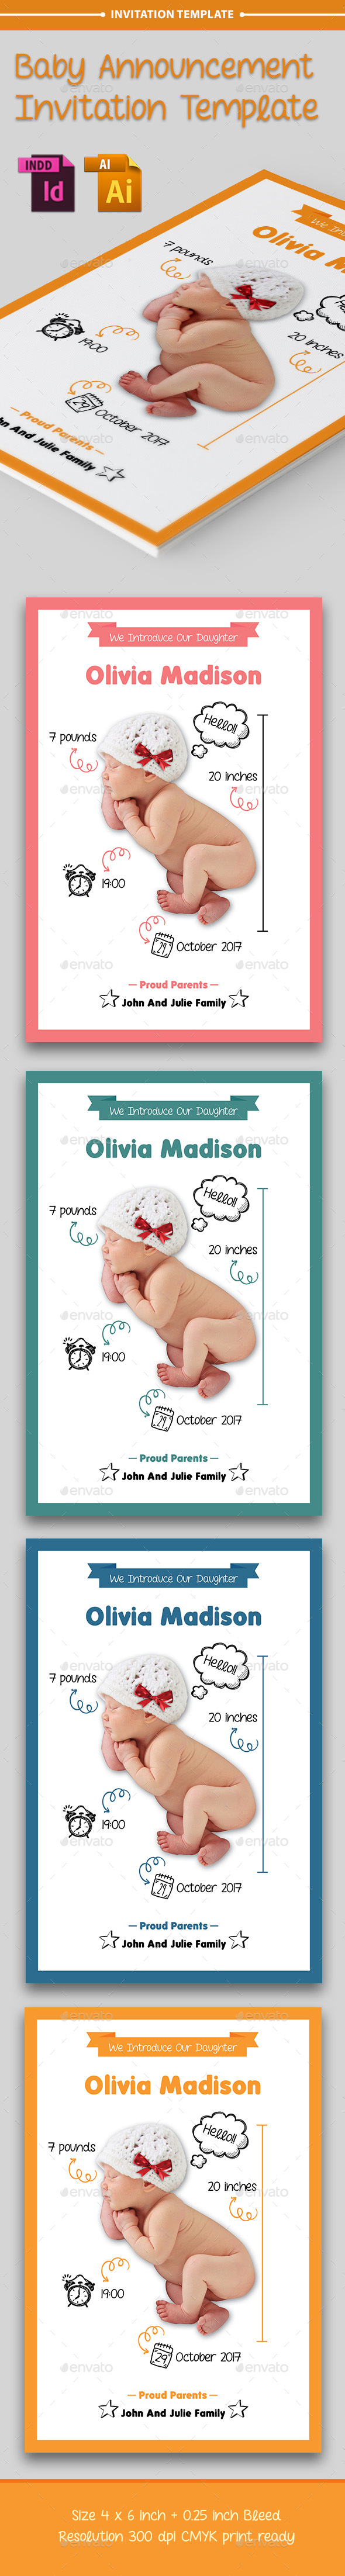 Baby Announcement Template - Vol.7 - Cards & Invites Print Templates